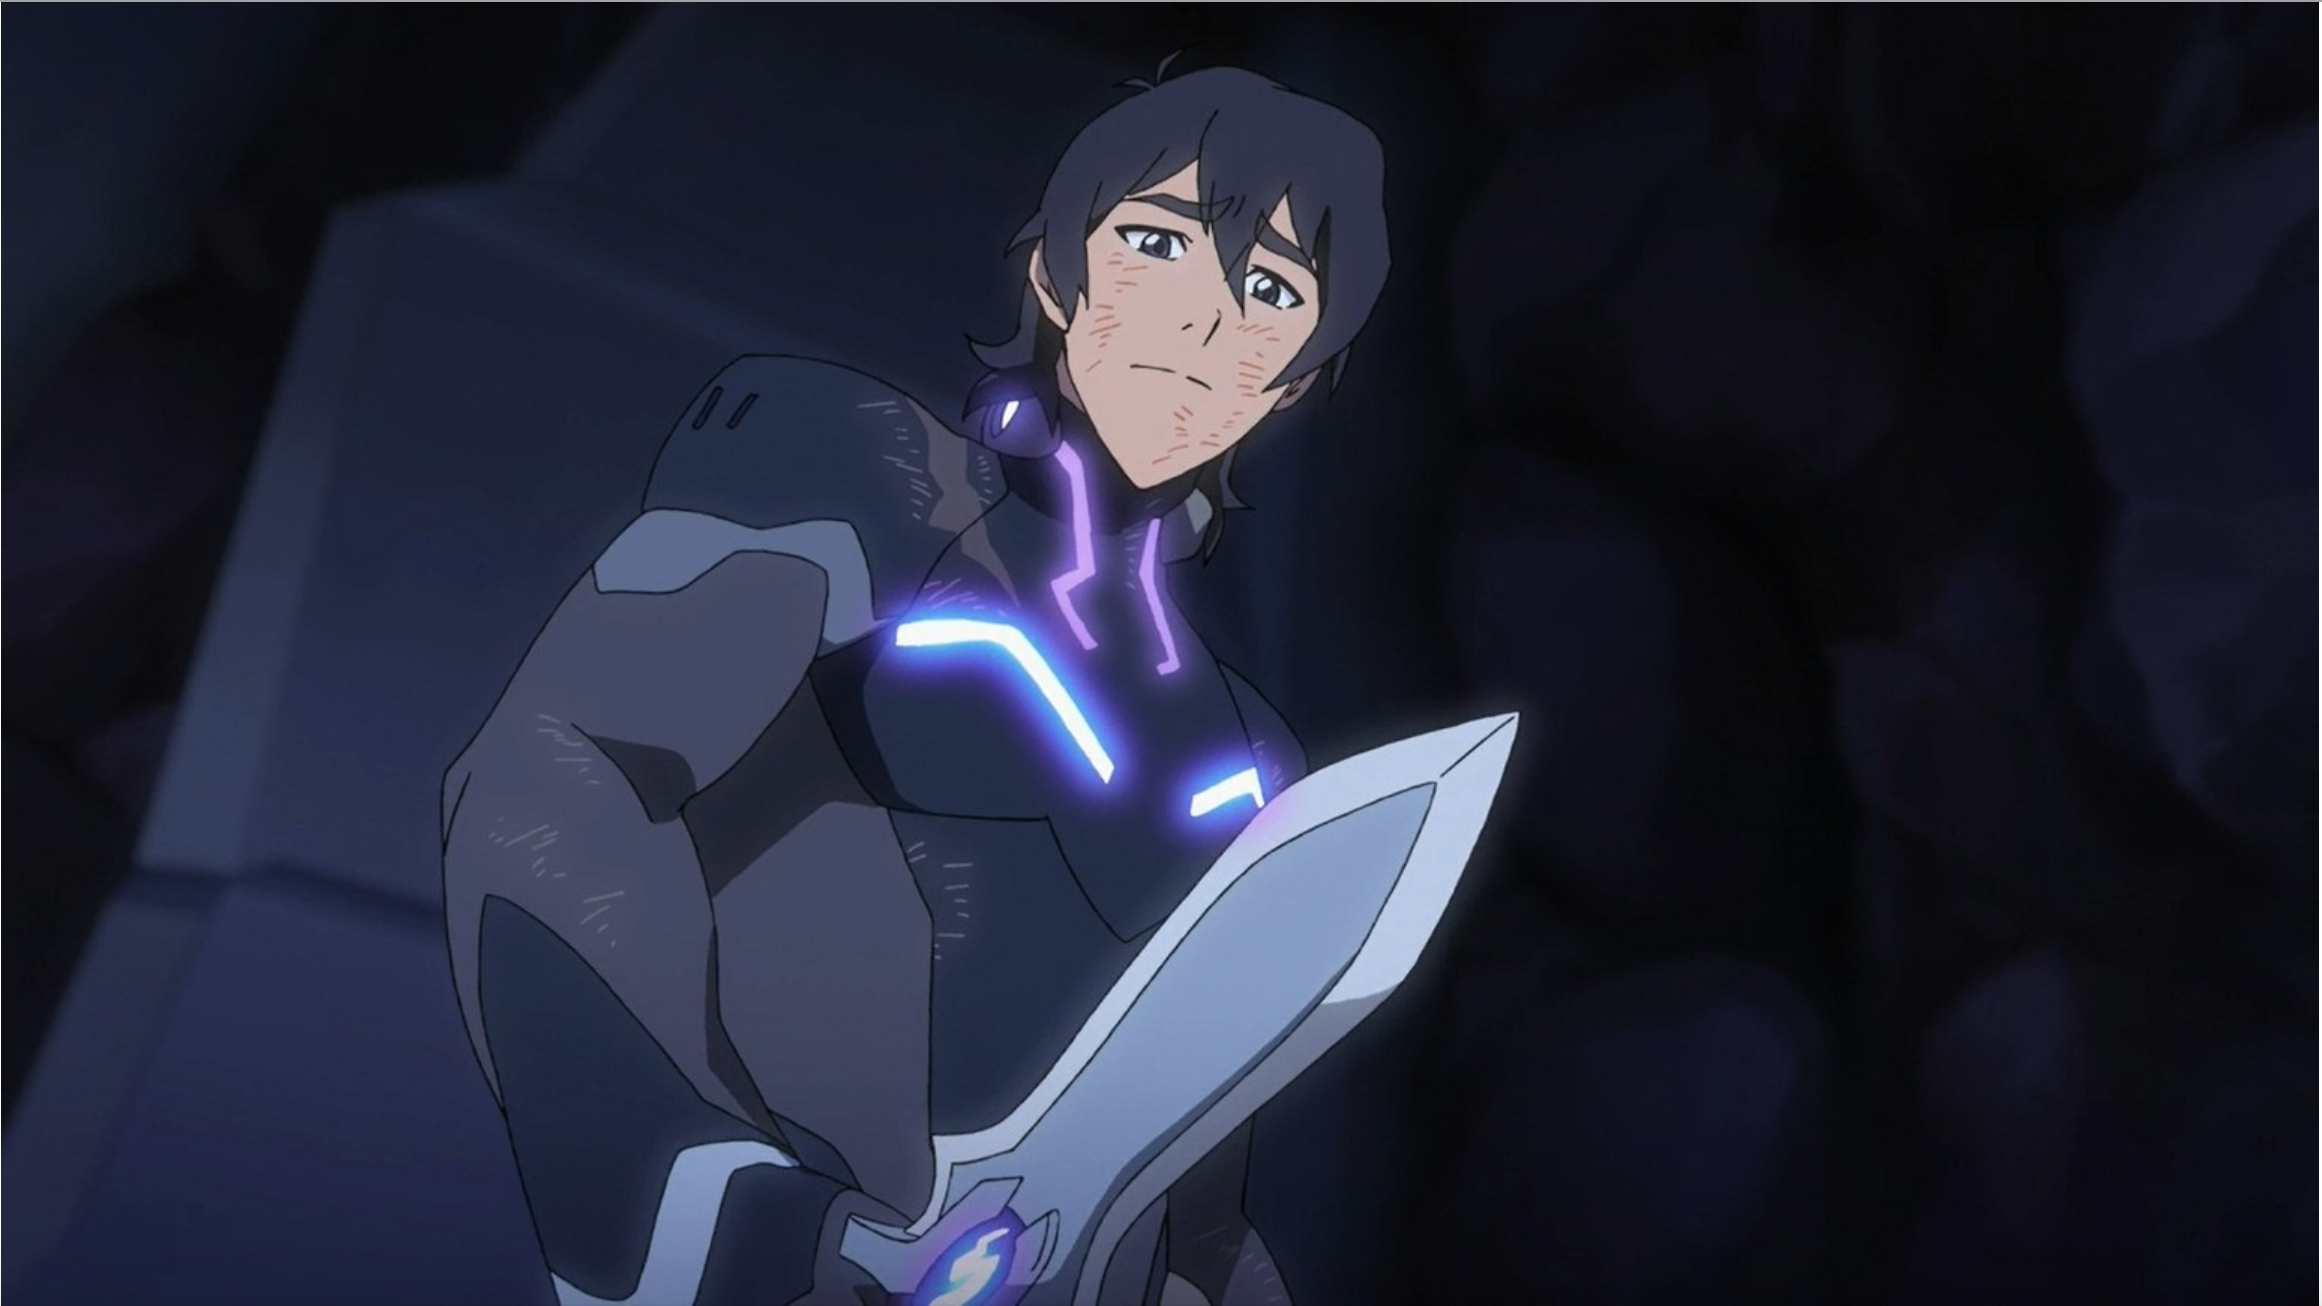 Keith looking at his dagger knife blade feeling regret of his keith looking at his dagger knife blade feeling regret of his choice from voltron legendary defender biocorpaavc